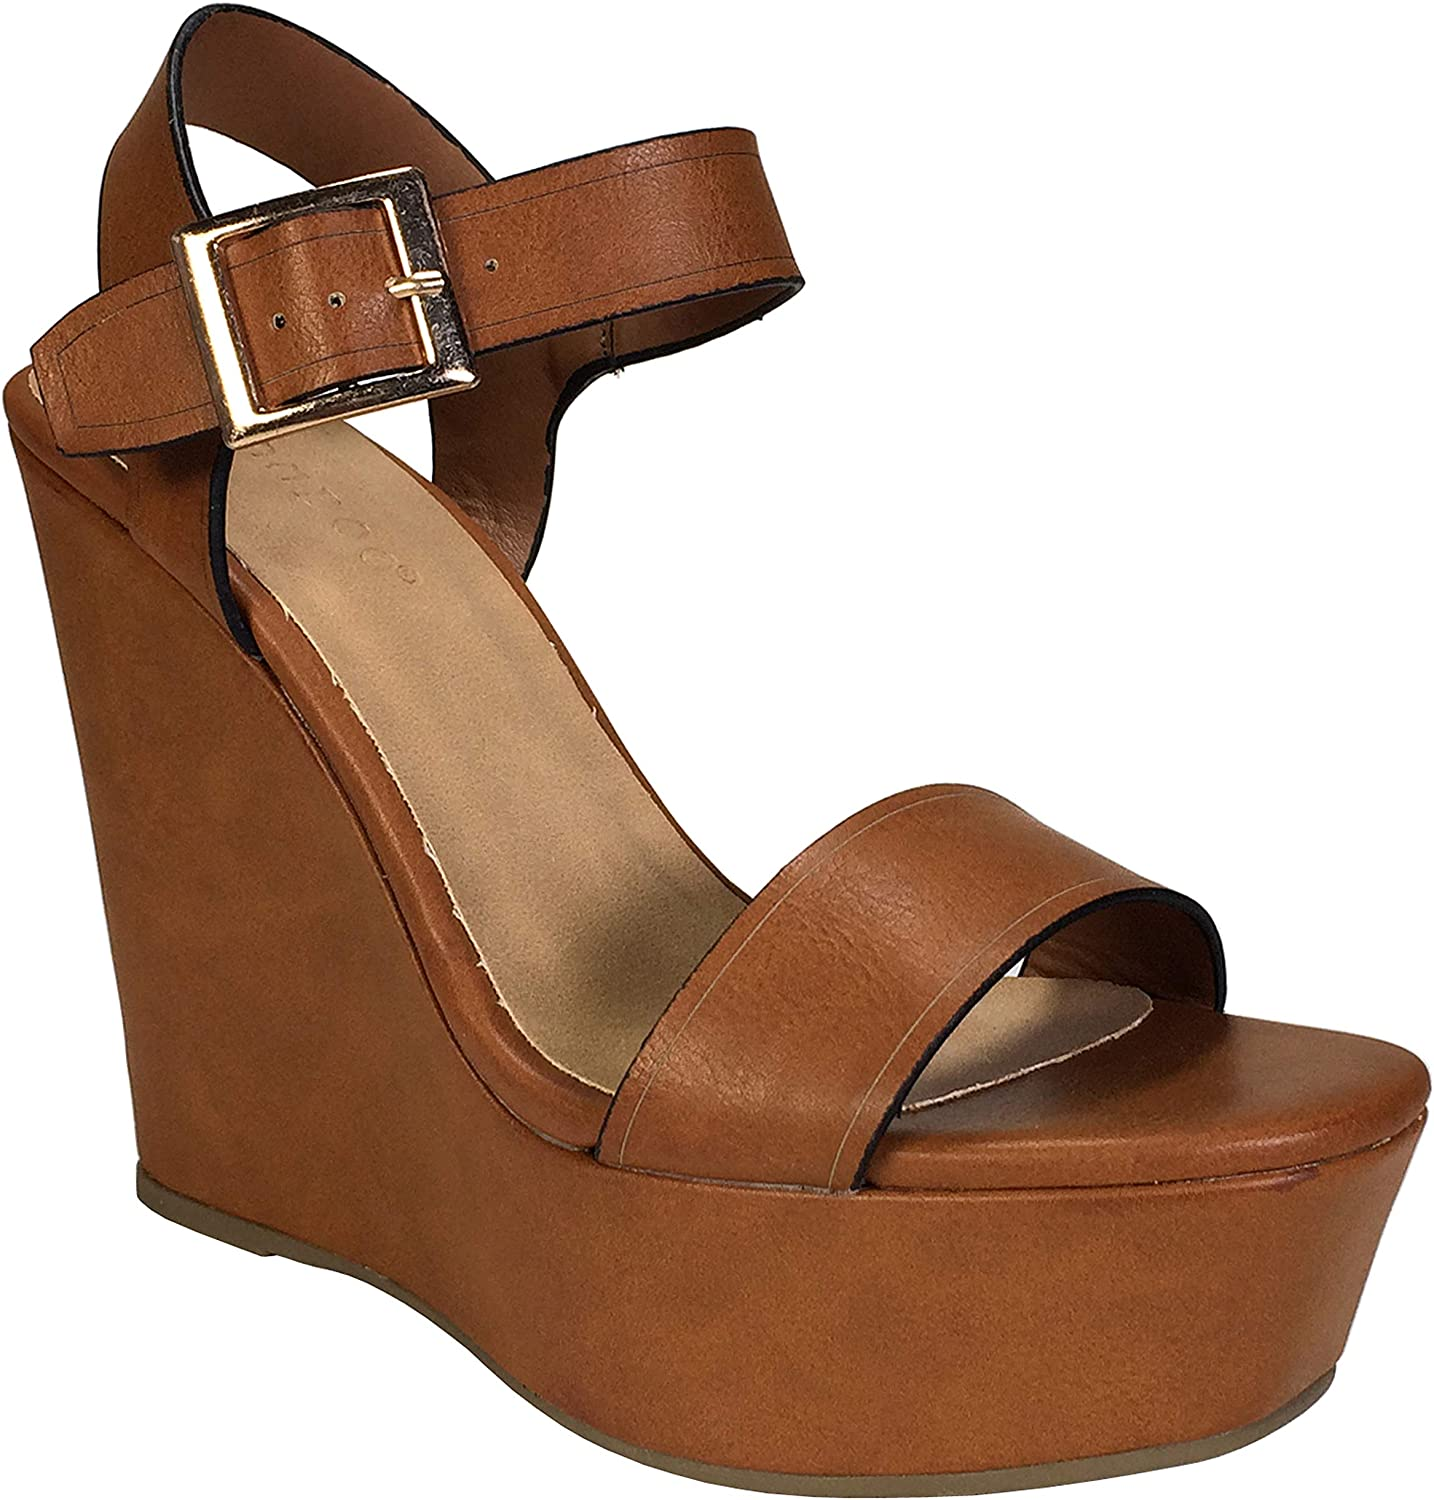 BAMBOO Women's Single Band Wedge Sandal favorite St Recommended Quarter with Platform